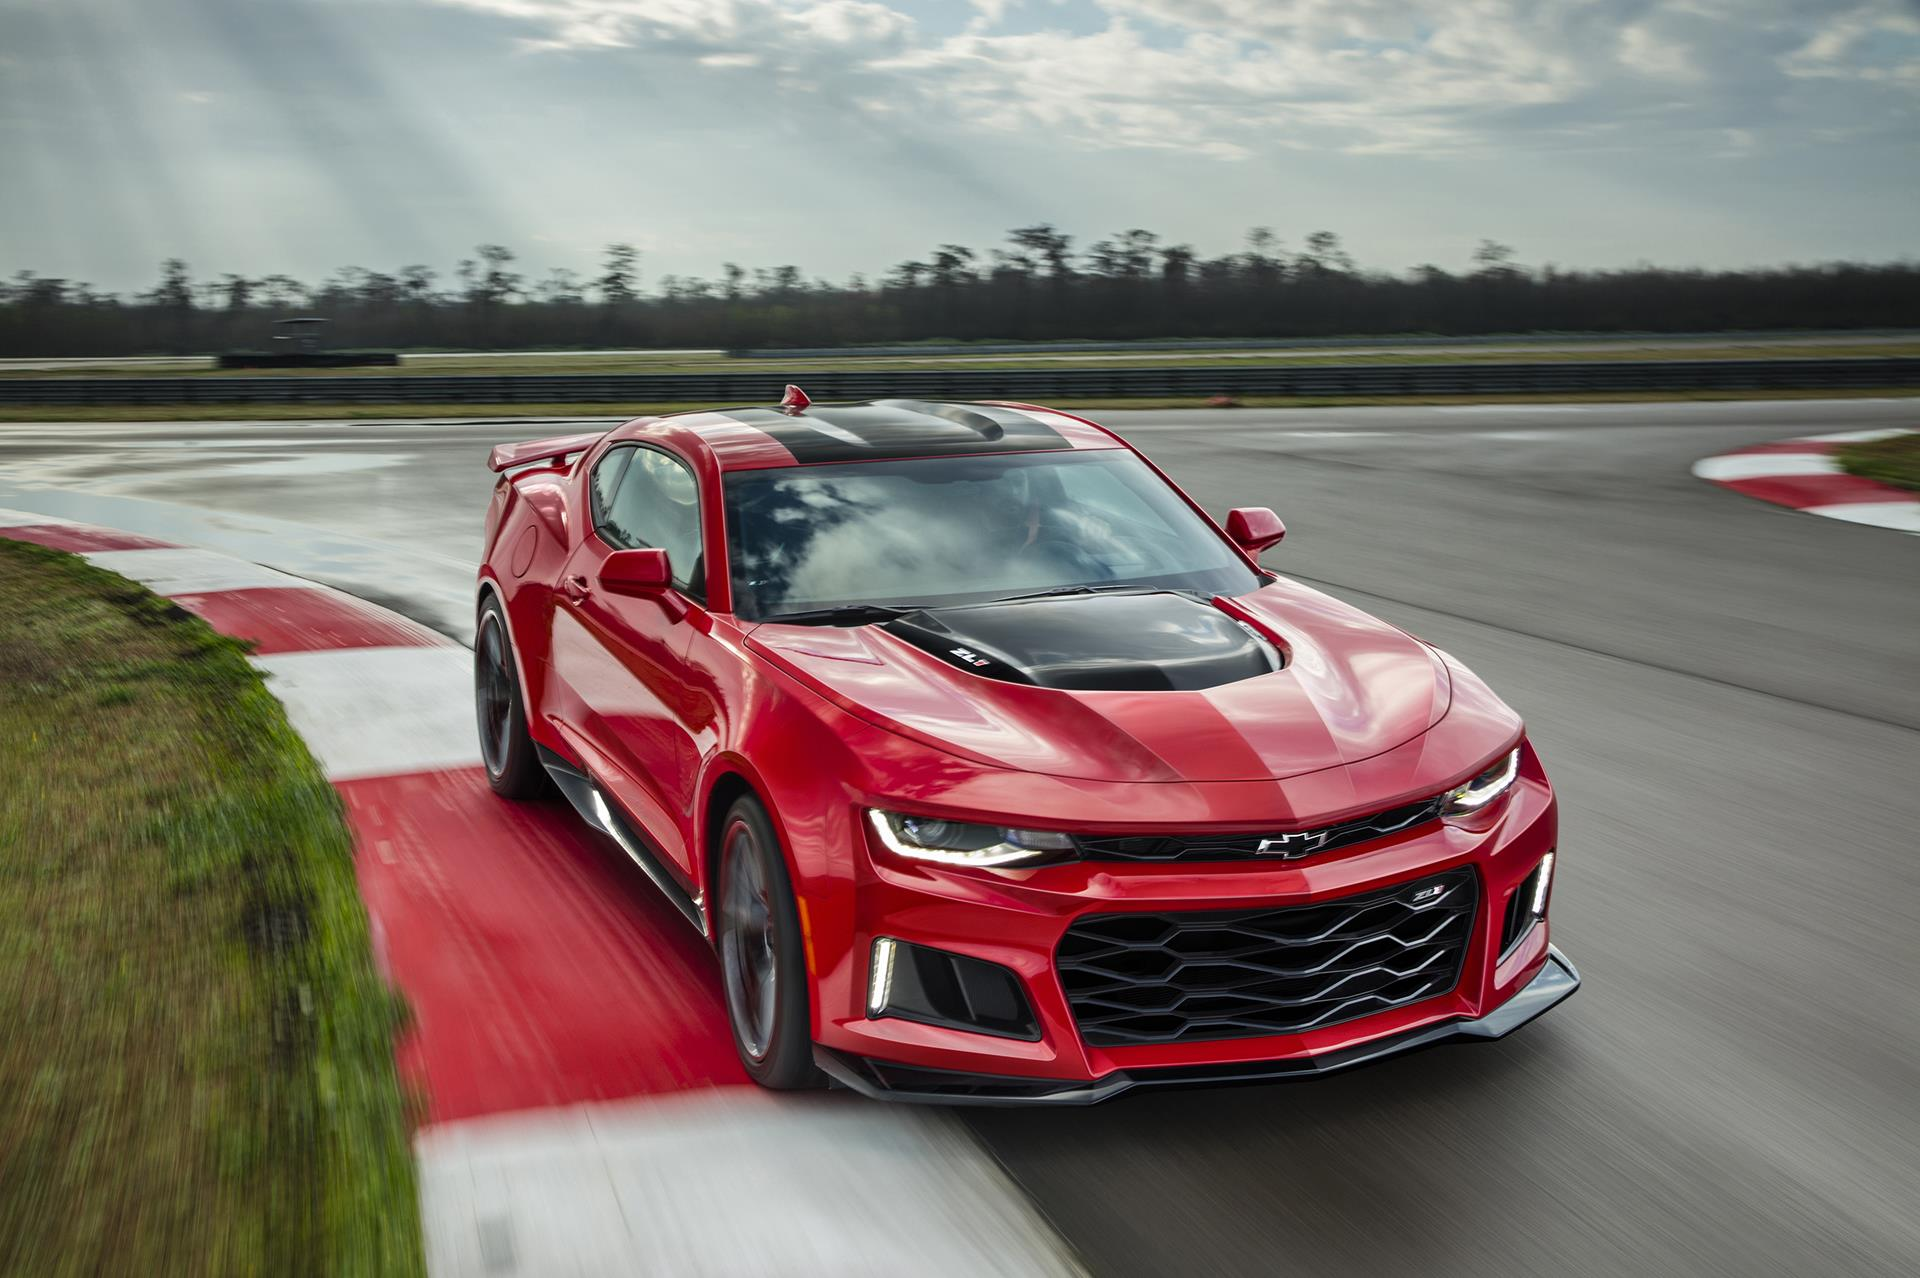 2017 Chevrolet Camaro ZL1 News and Information